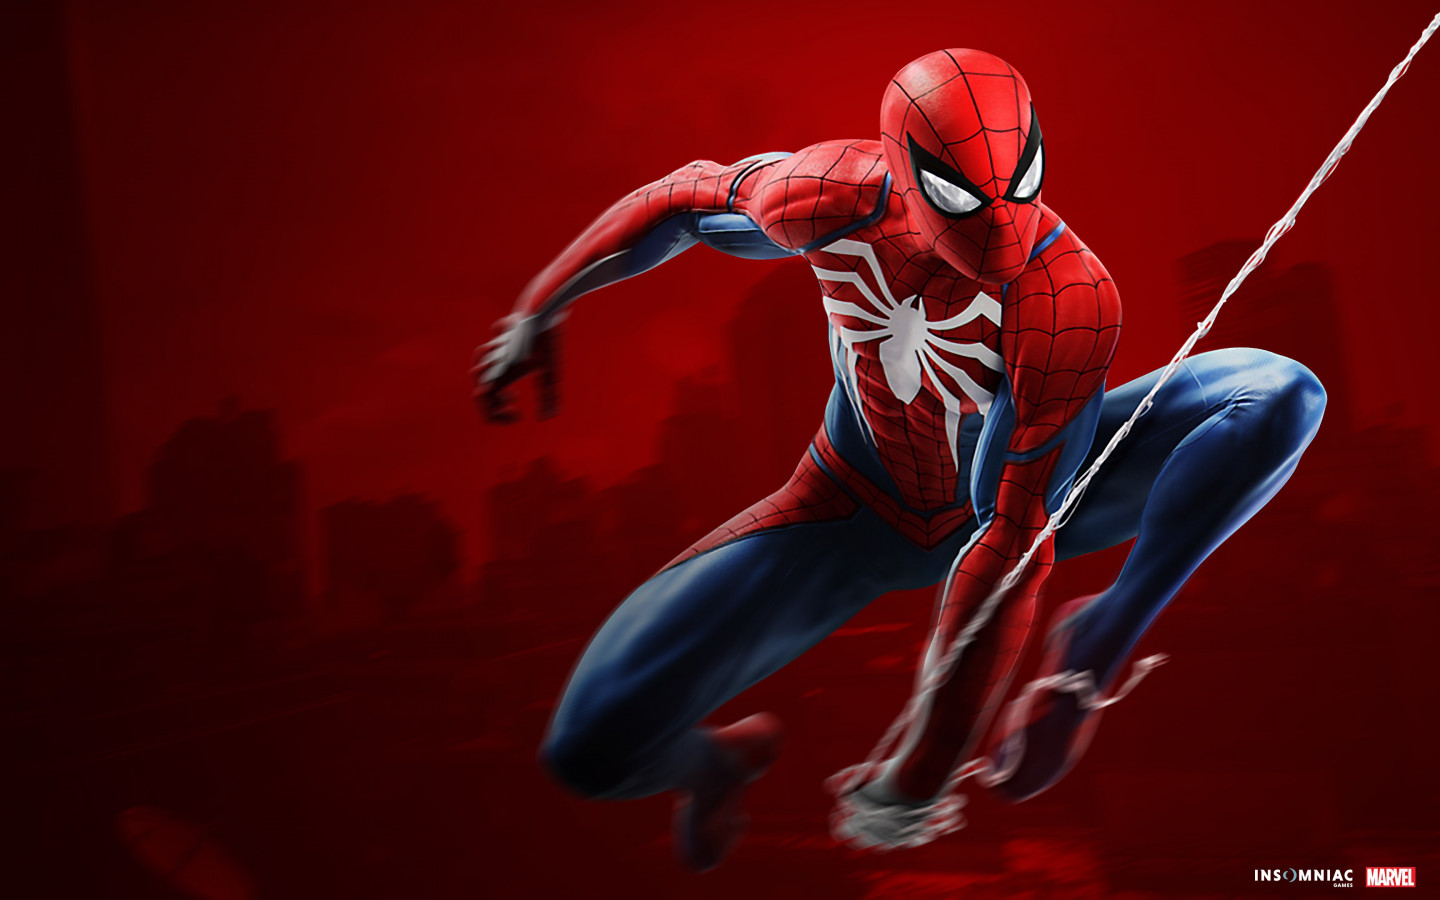 Spider Man game on PS4 wallpaper 1440x900